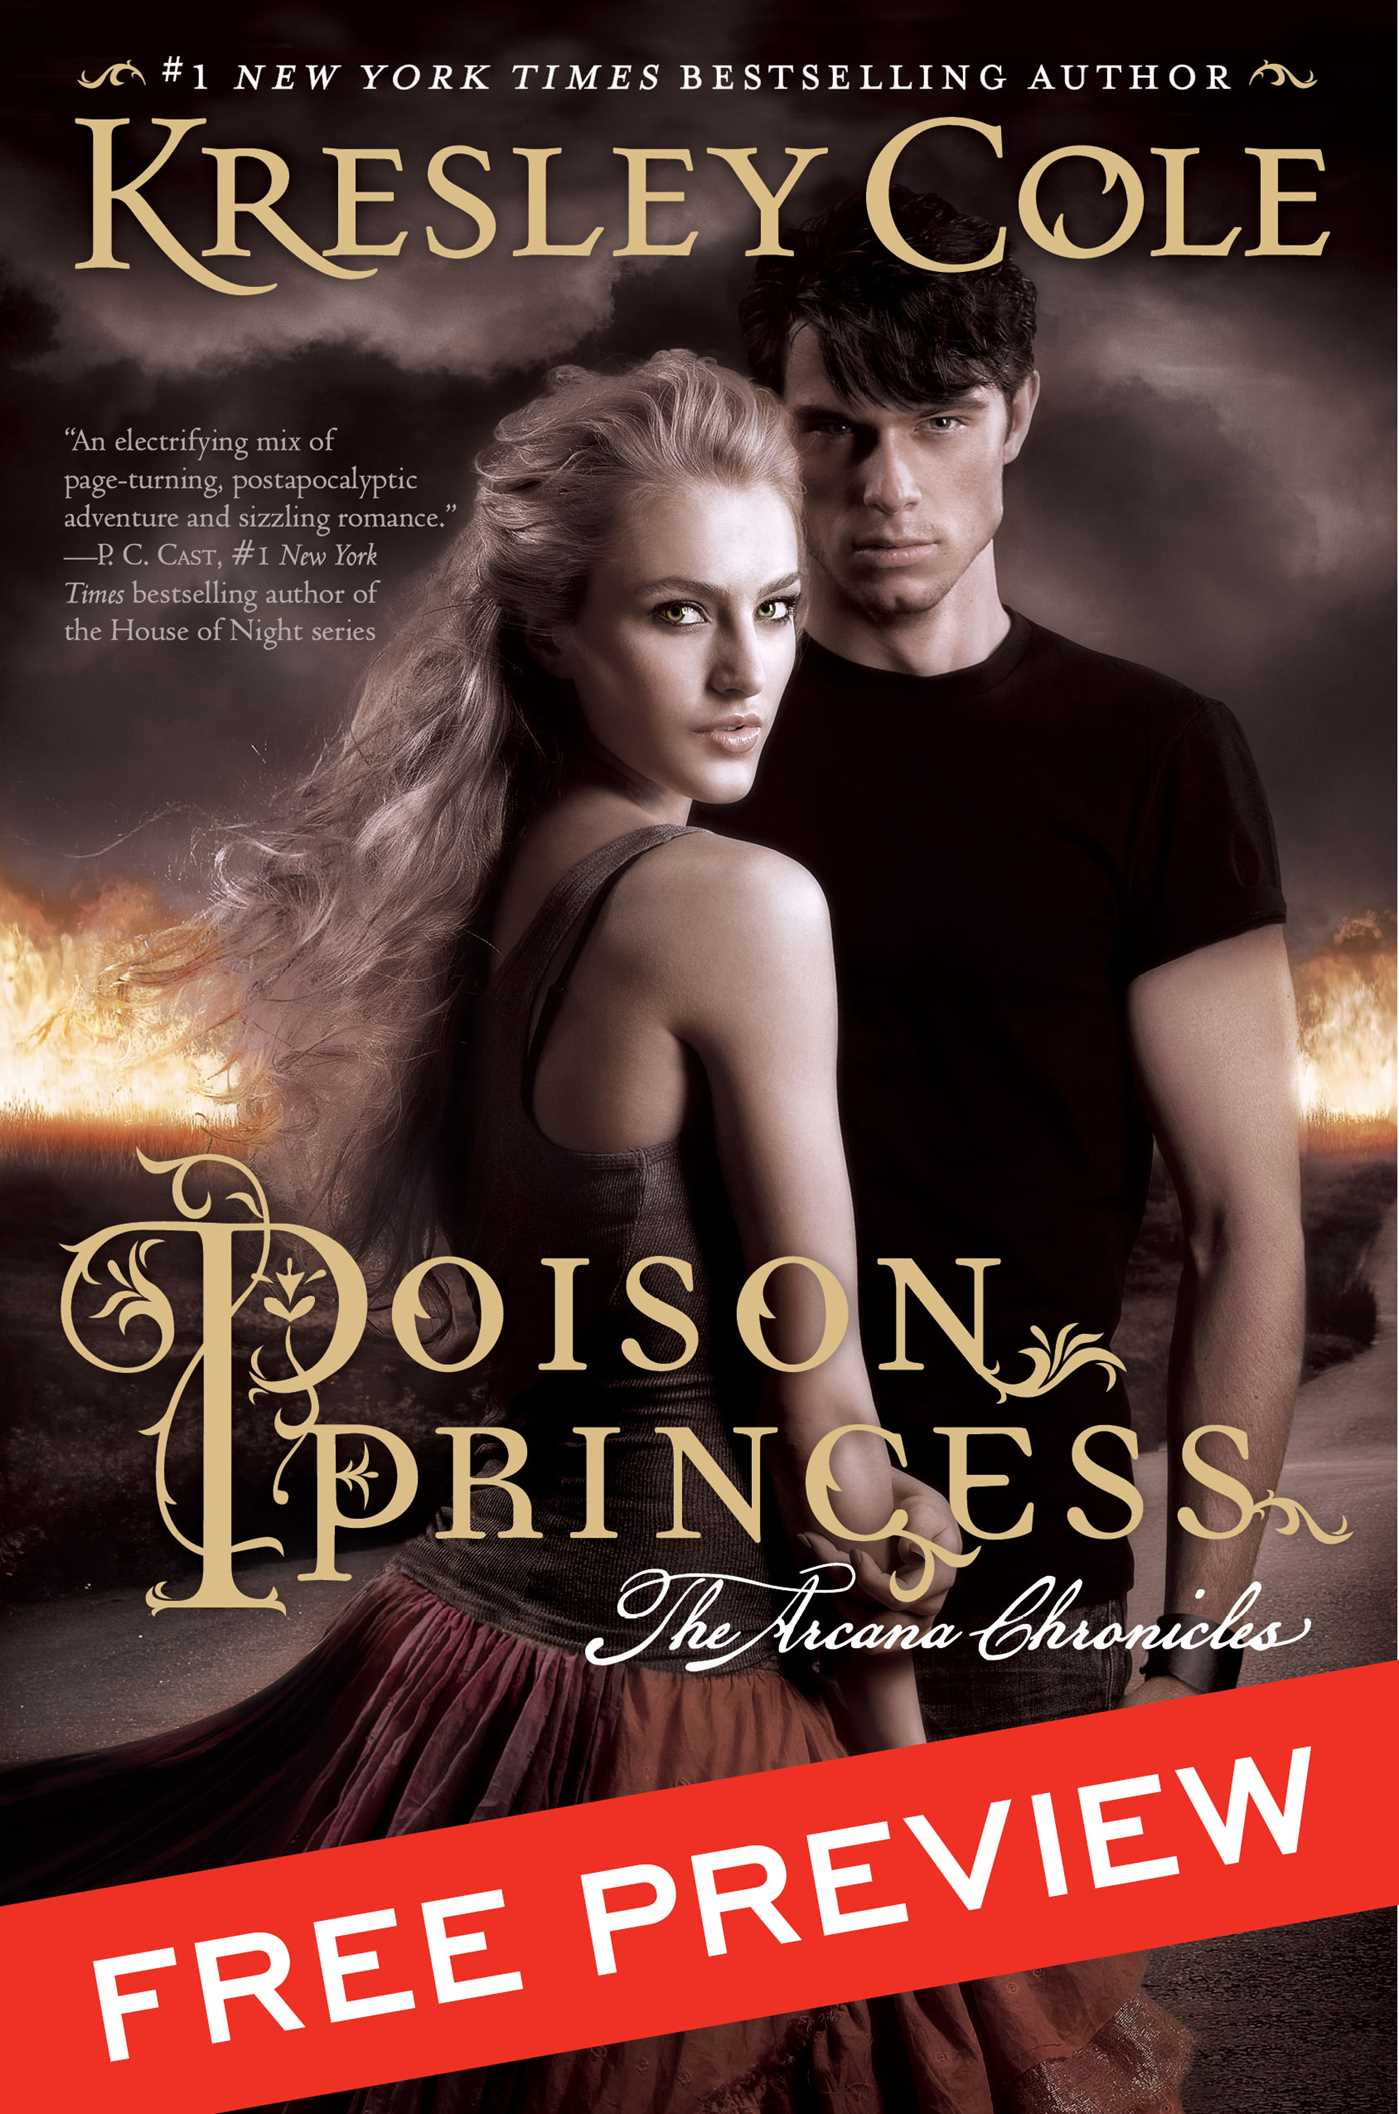 Poison princess free preview edition 9781442489578 hr